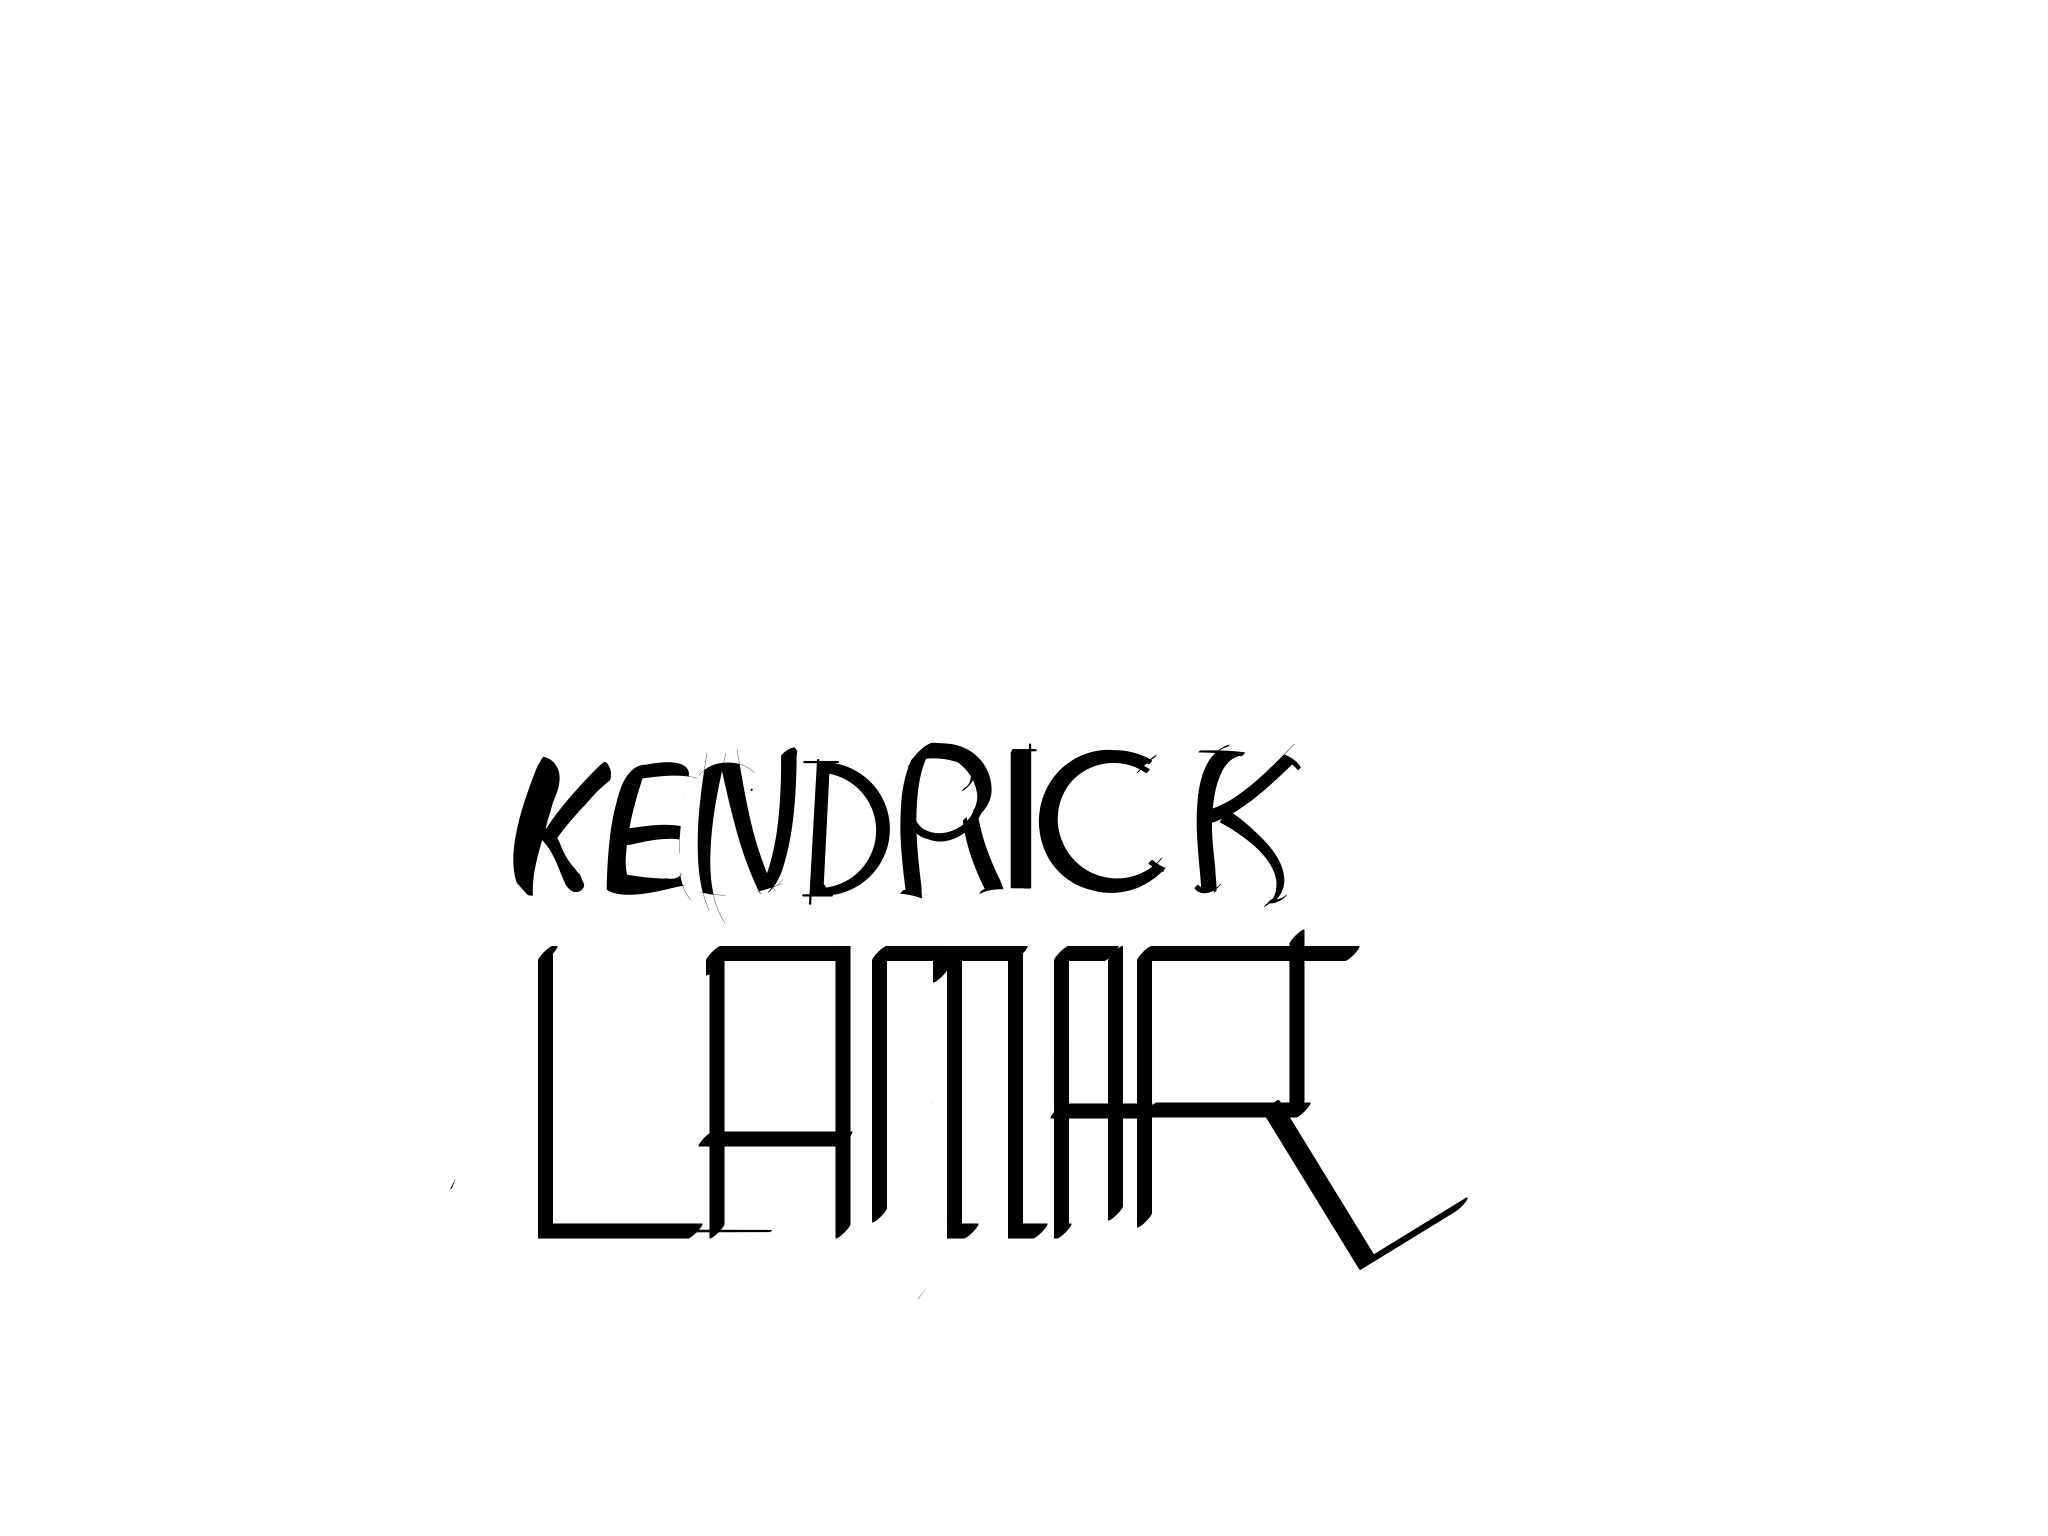 KENDRICK LAMAR: BLACK & WHITE SERIES